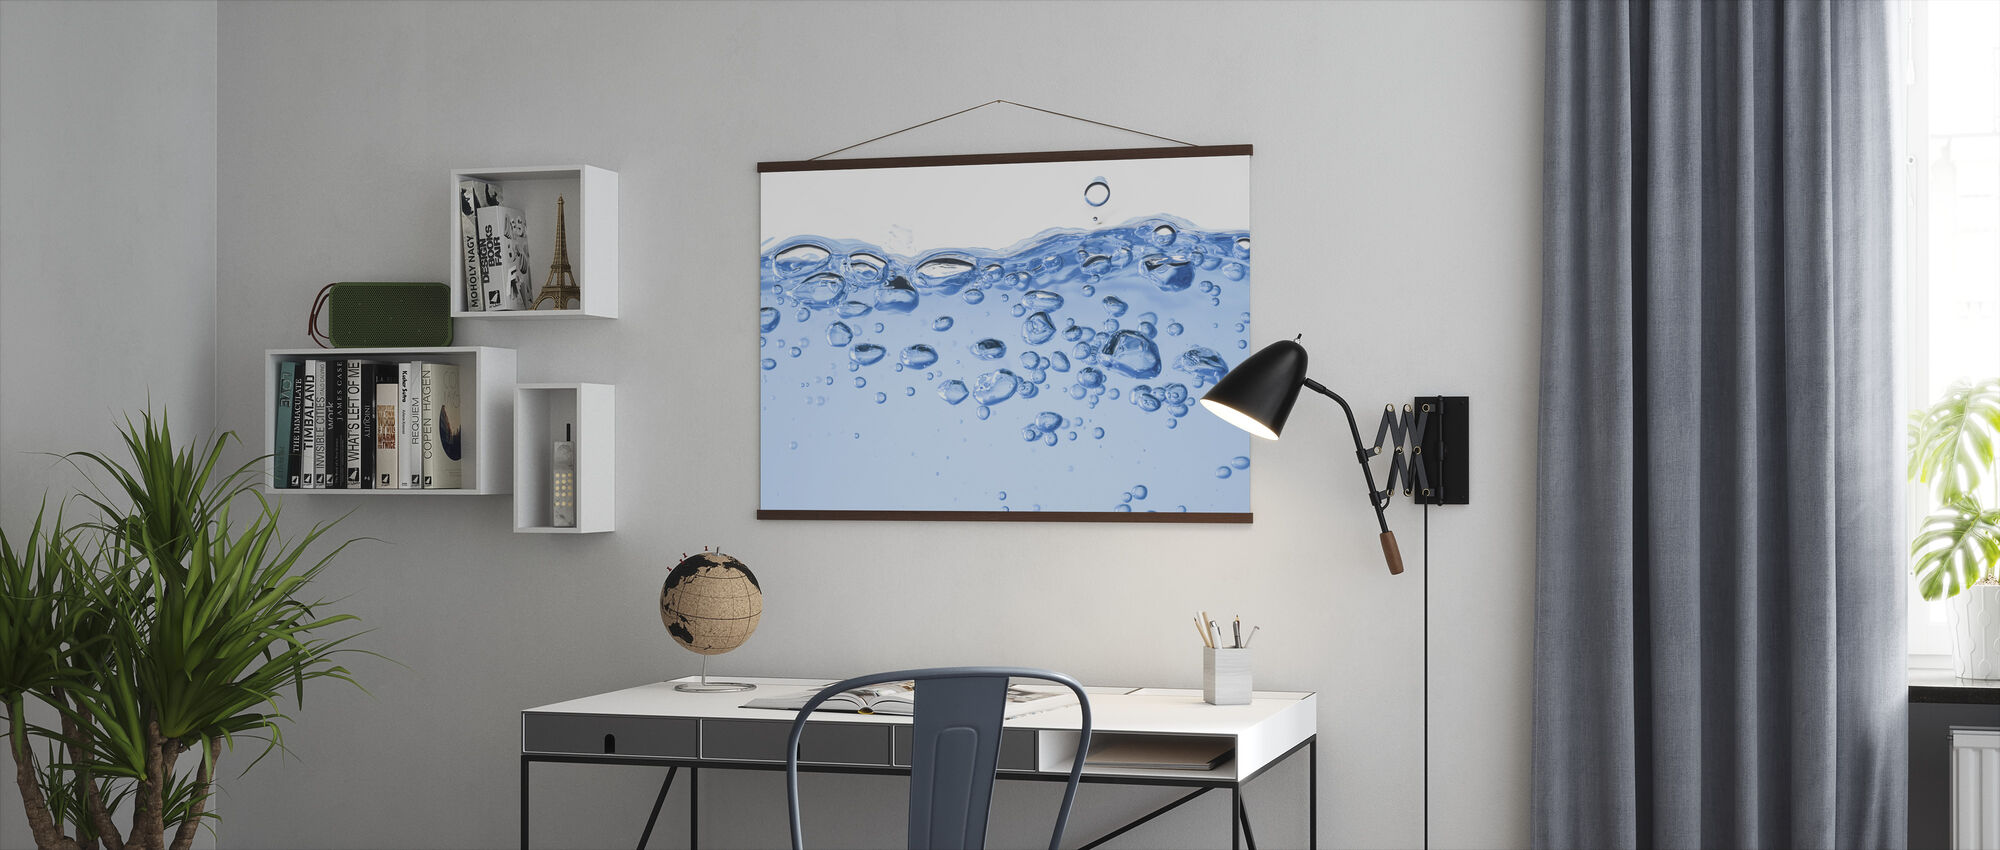 Splashing Water - Poster - Office